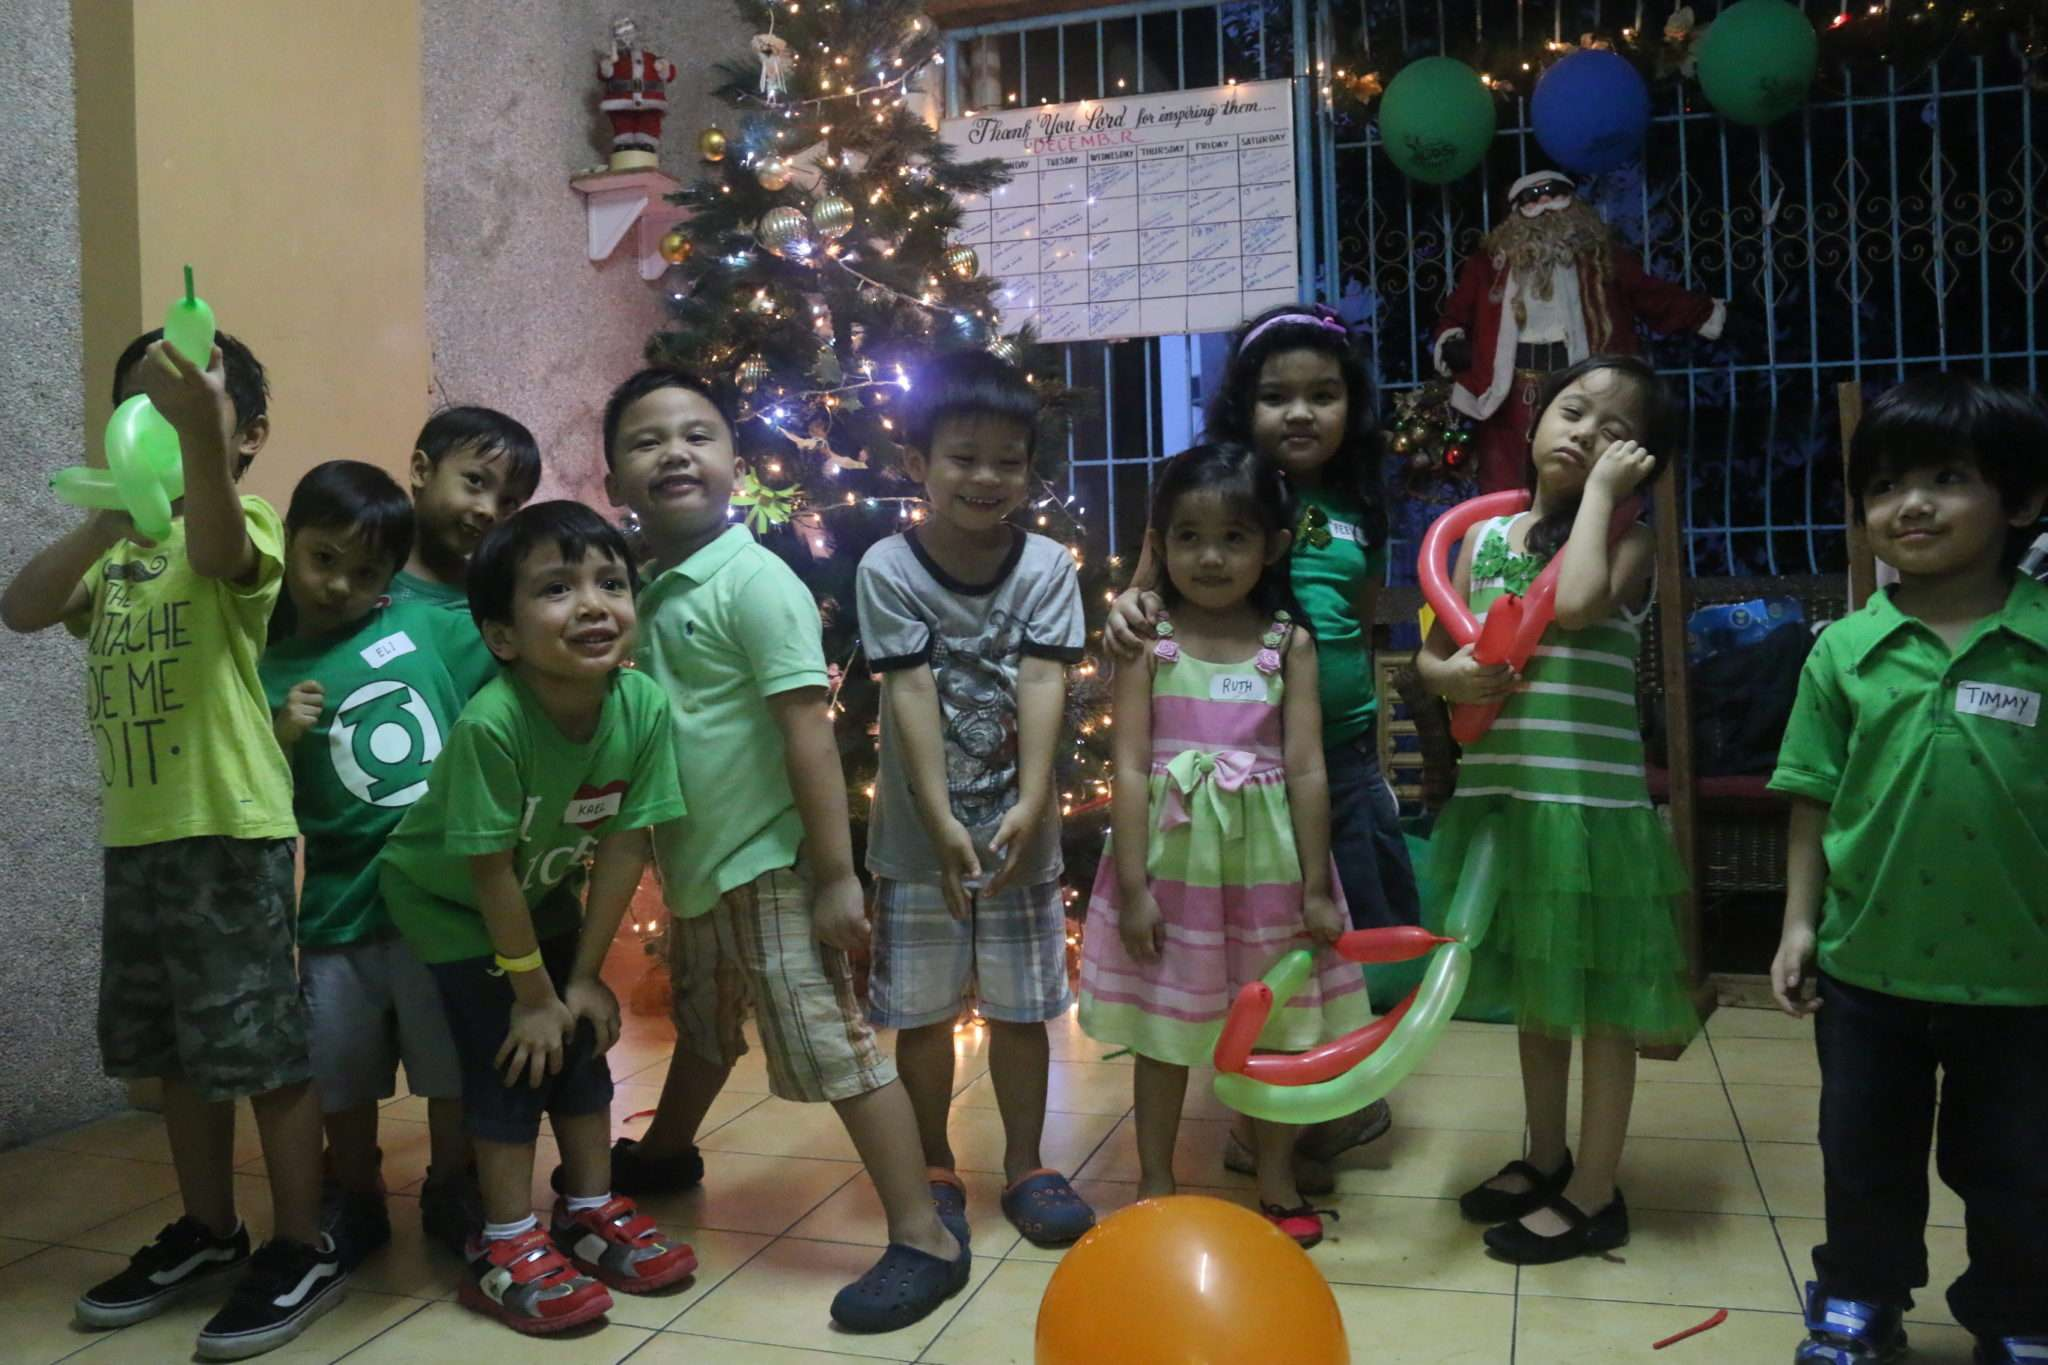 Lifelong Learners Who Love the Lord (Team L4 kids!) :)